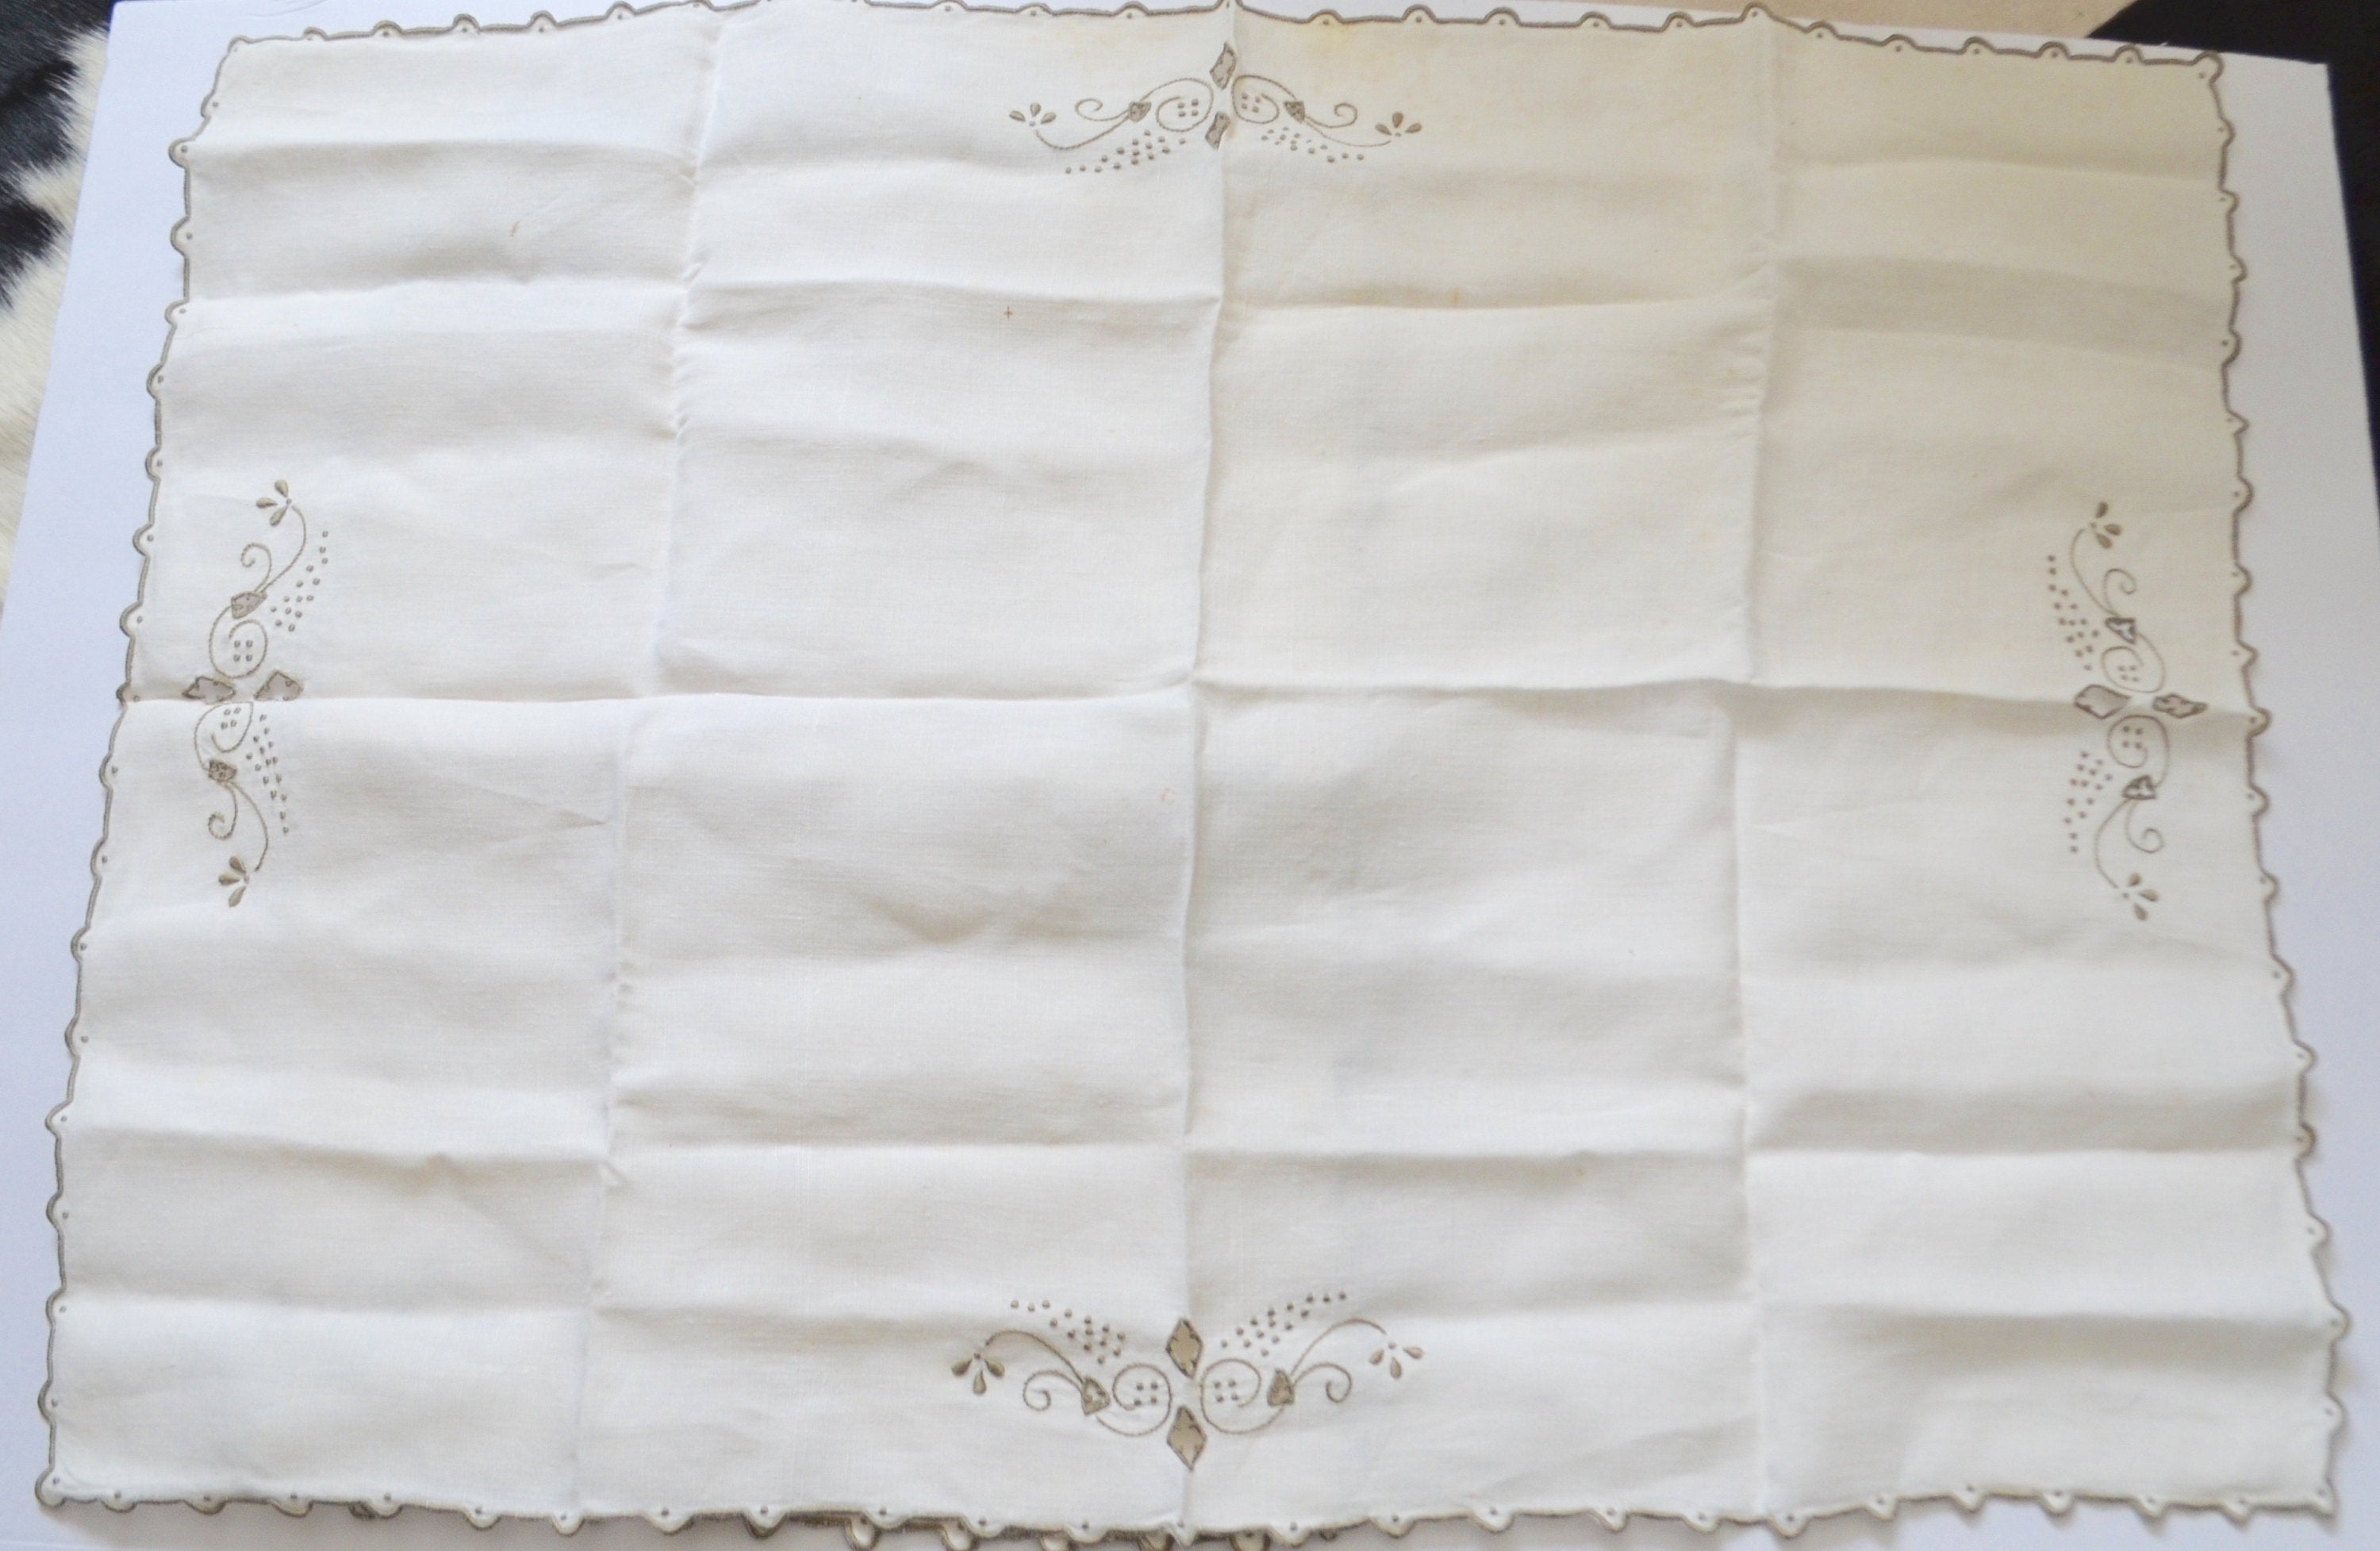 1930 Antique Ecru 8 Linen Madeira Linen Portugal Embroidered 2 Tray Cover Cloth Linen Flowers Set